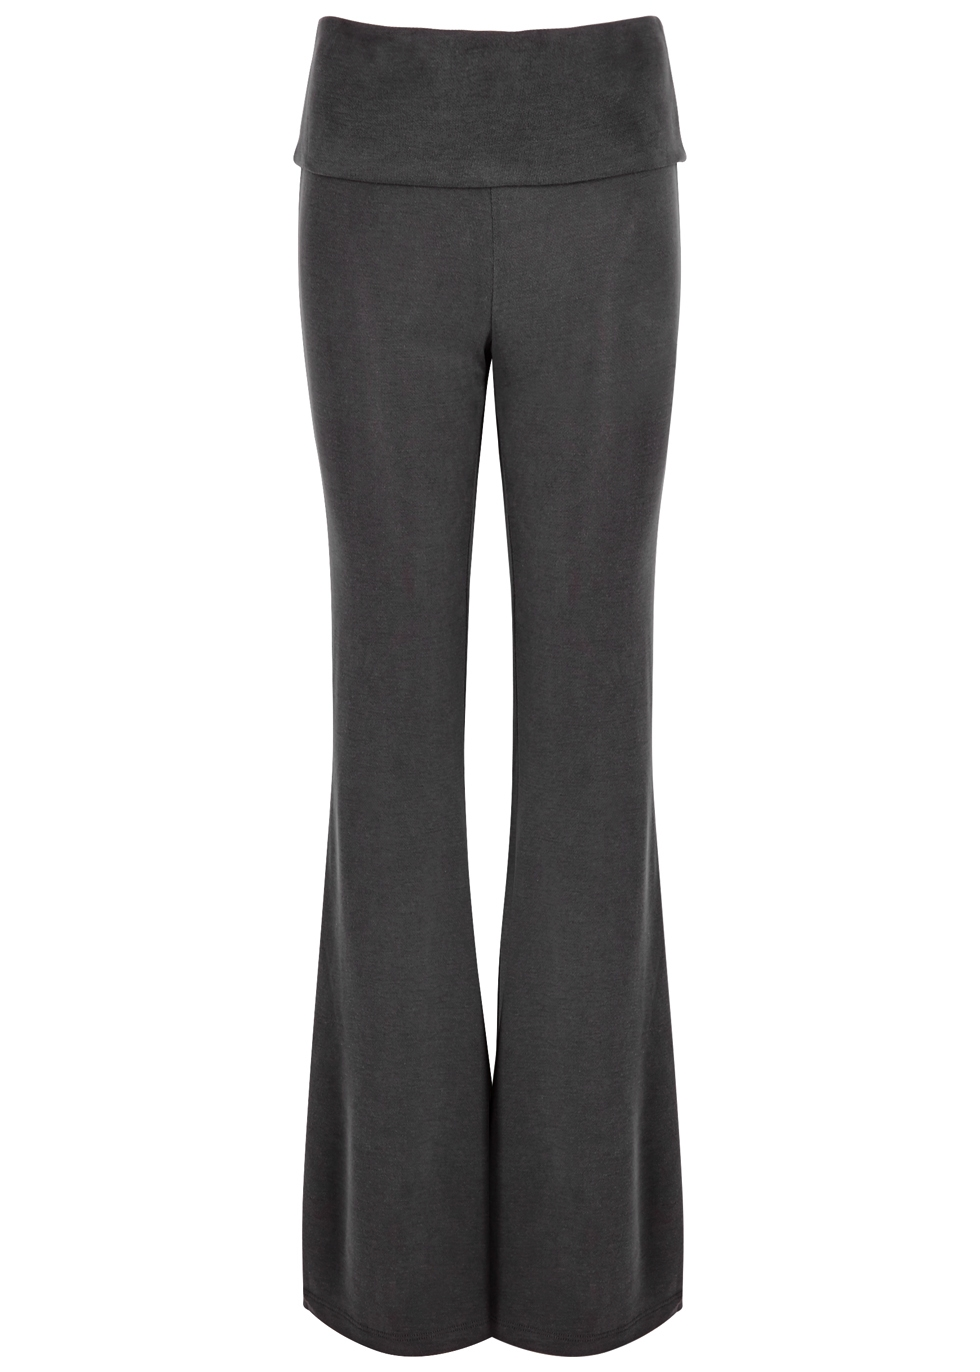 FREE PEOPLE MOVEMENT DIVISION FLARED JERSEY JOGGING TROUSERS